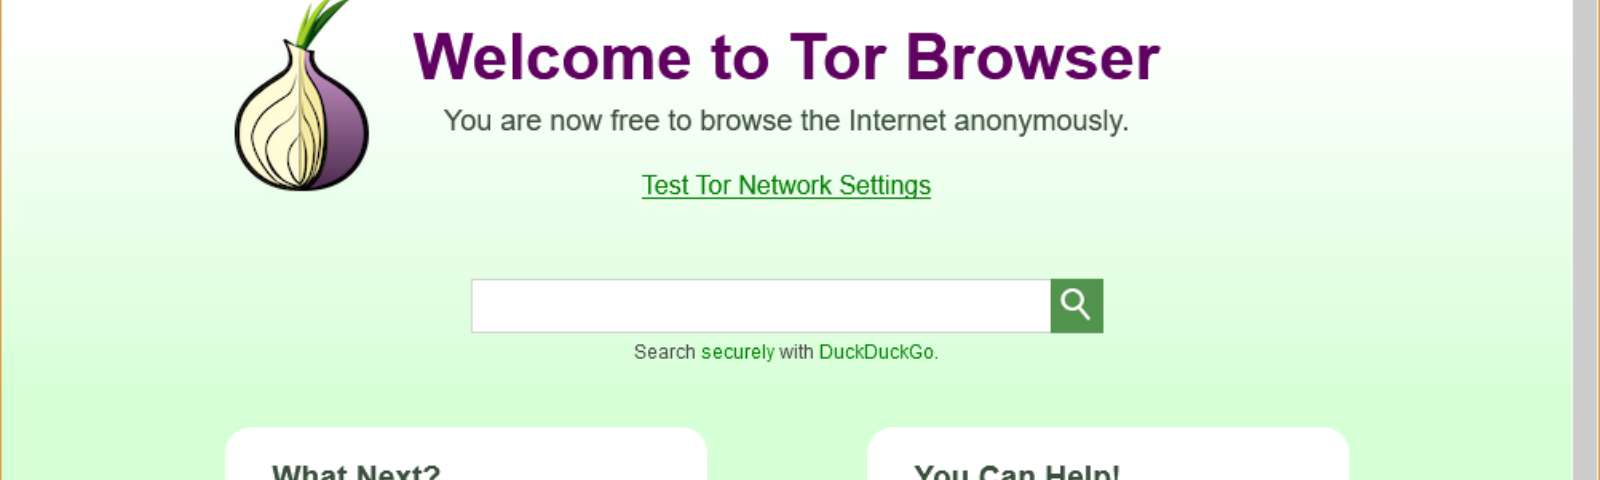 how to use tor browser гидра